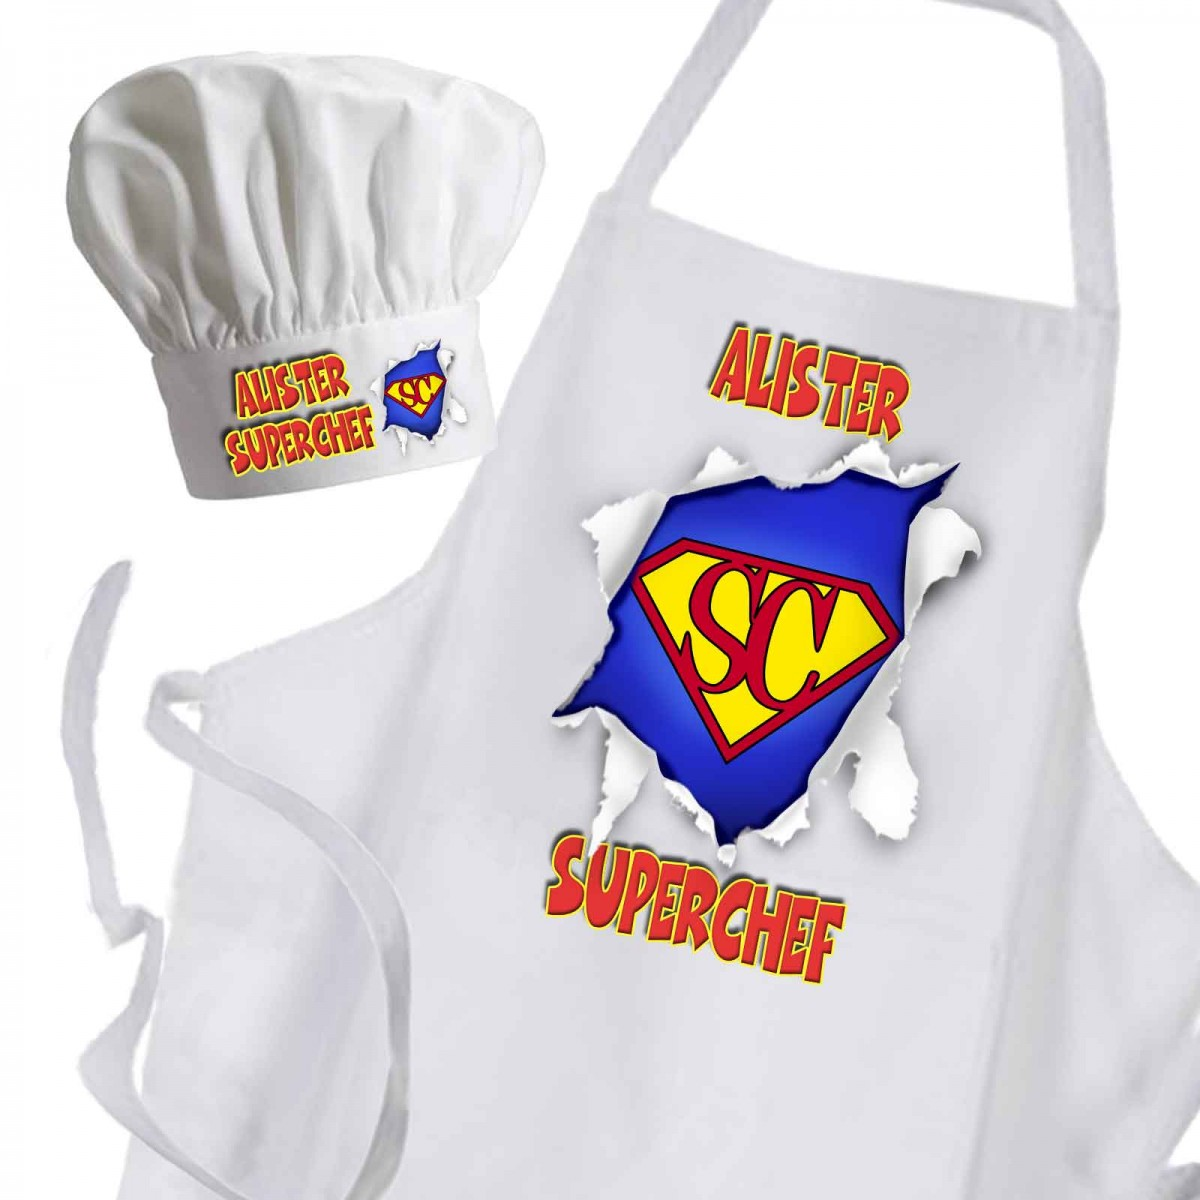 White apron and hat - Super Chef White Unisex Premium Cooking Kitchen Apron Chef Hat Set Or Available As Individual Items